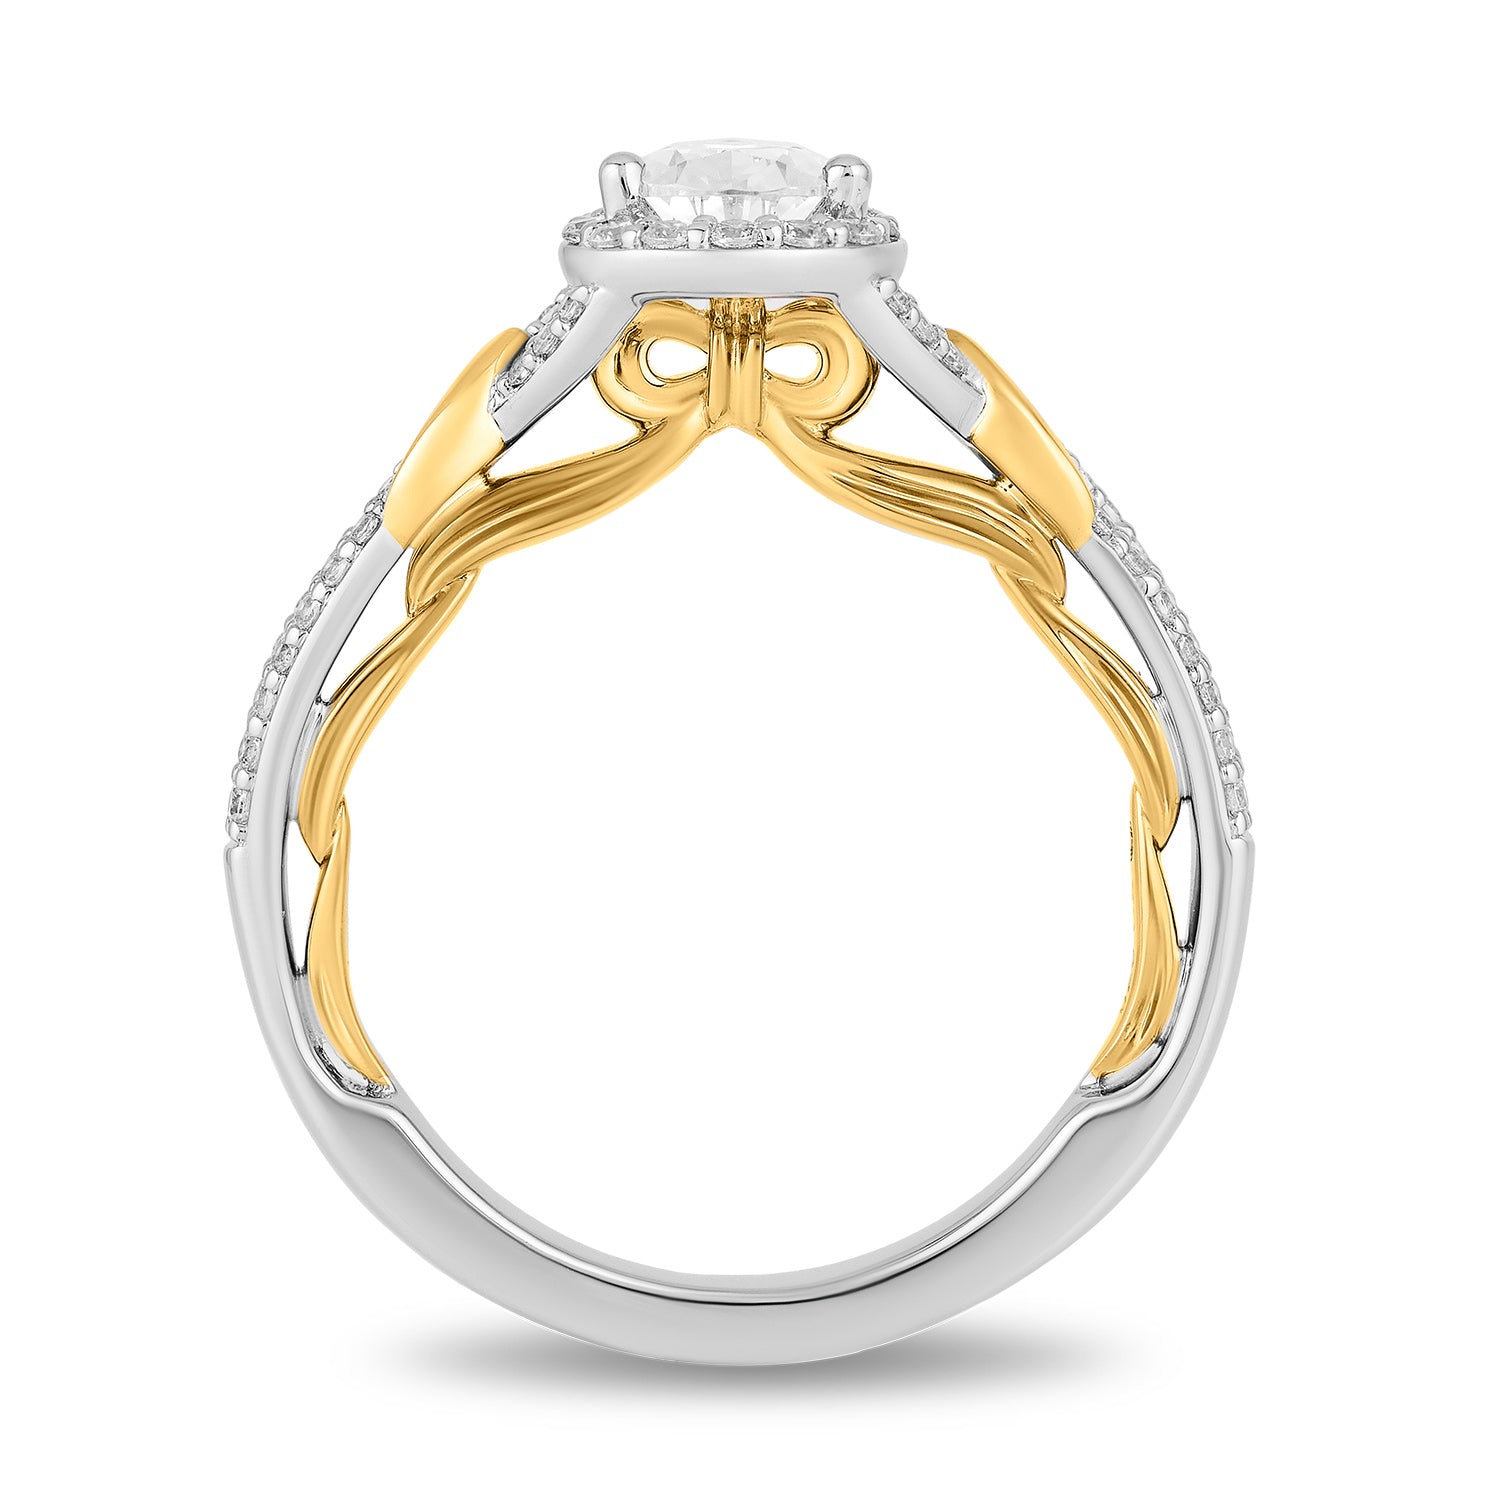 enchanted_disney-snow-white_engagement_ring_3/4CTTW_3